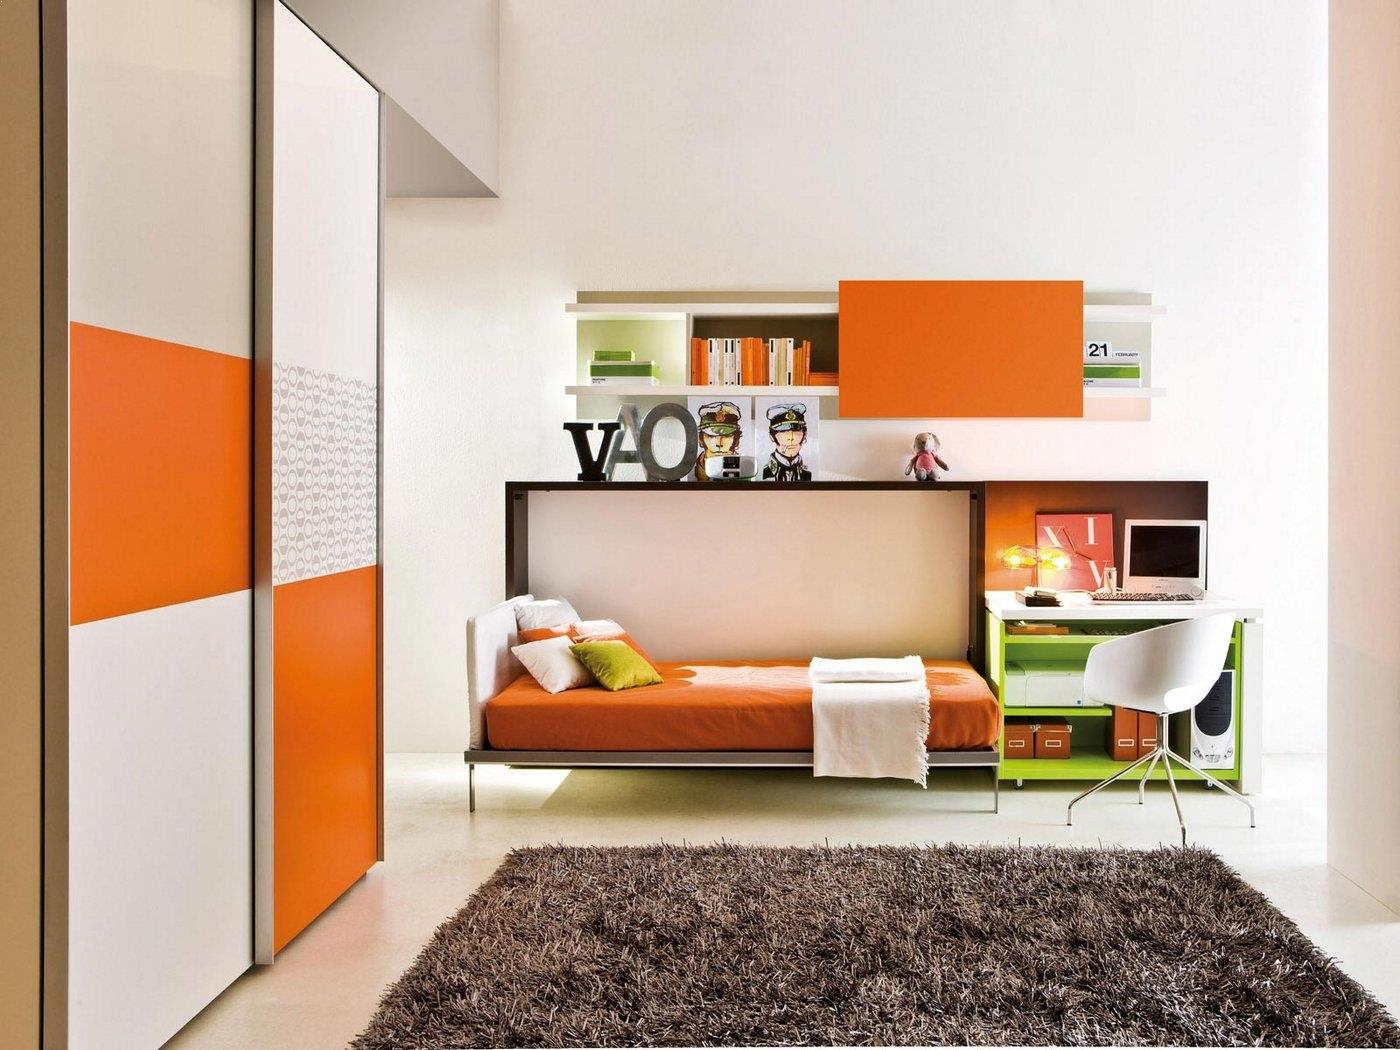 45-mobilier-inteligent-design-interior-smart